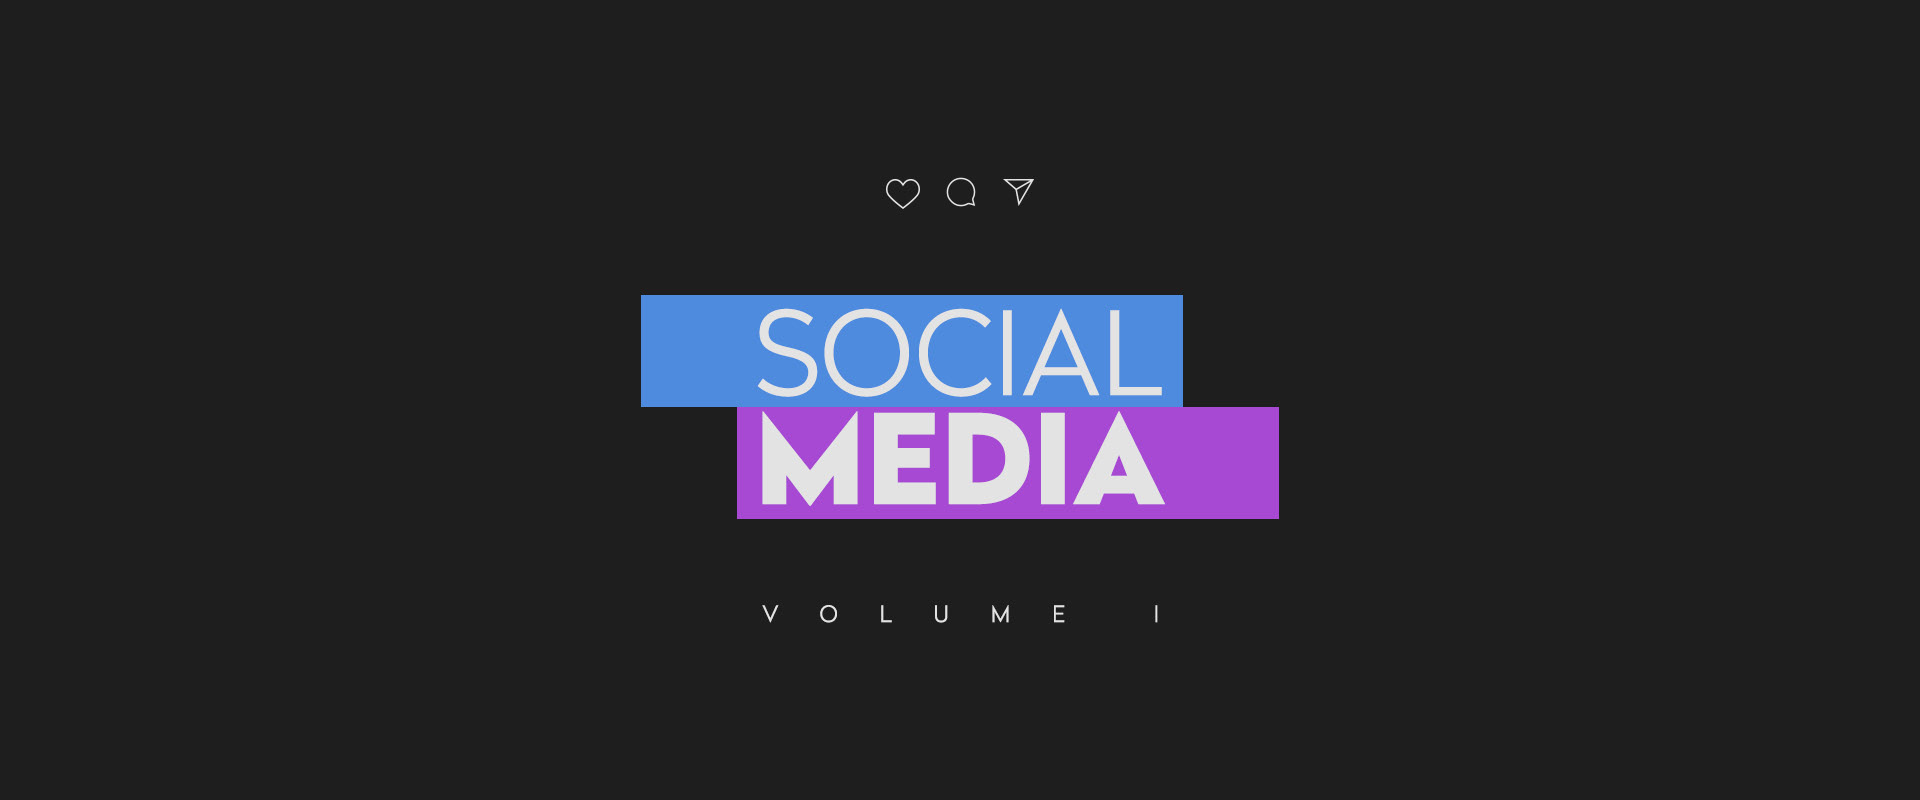 Social Media Design Projects Photos Videos Logos Illustrations And Branding On Behance